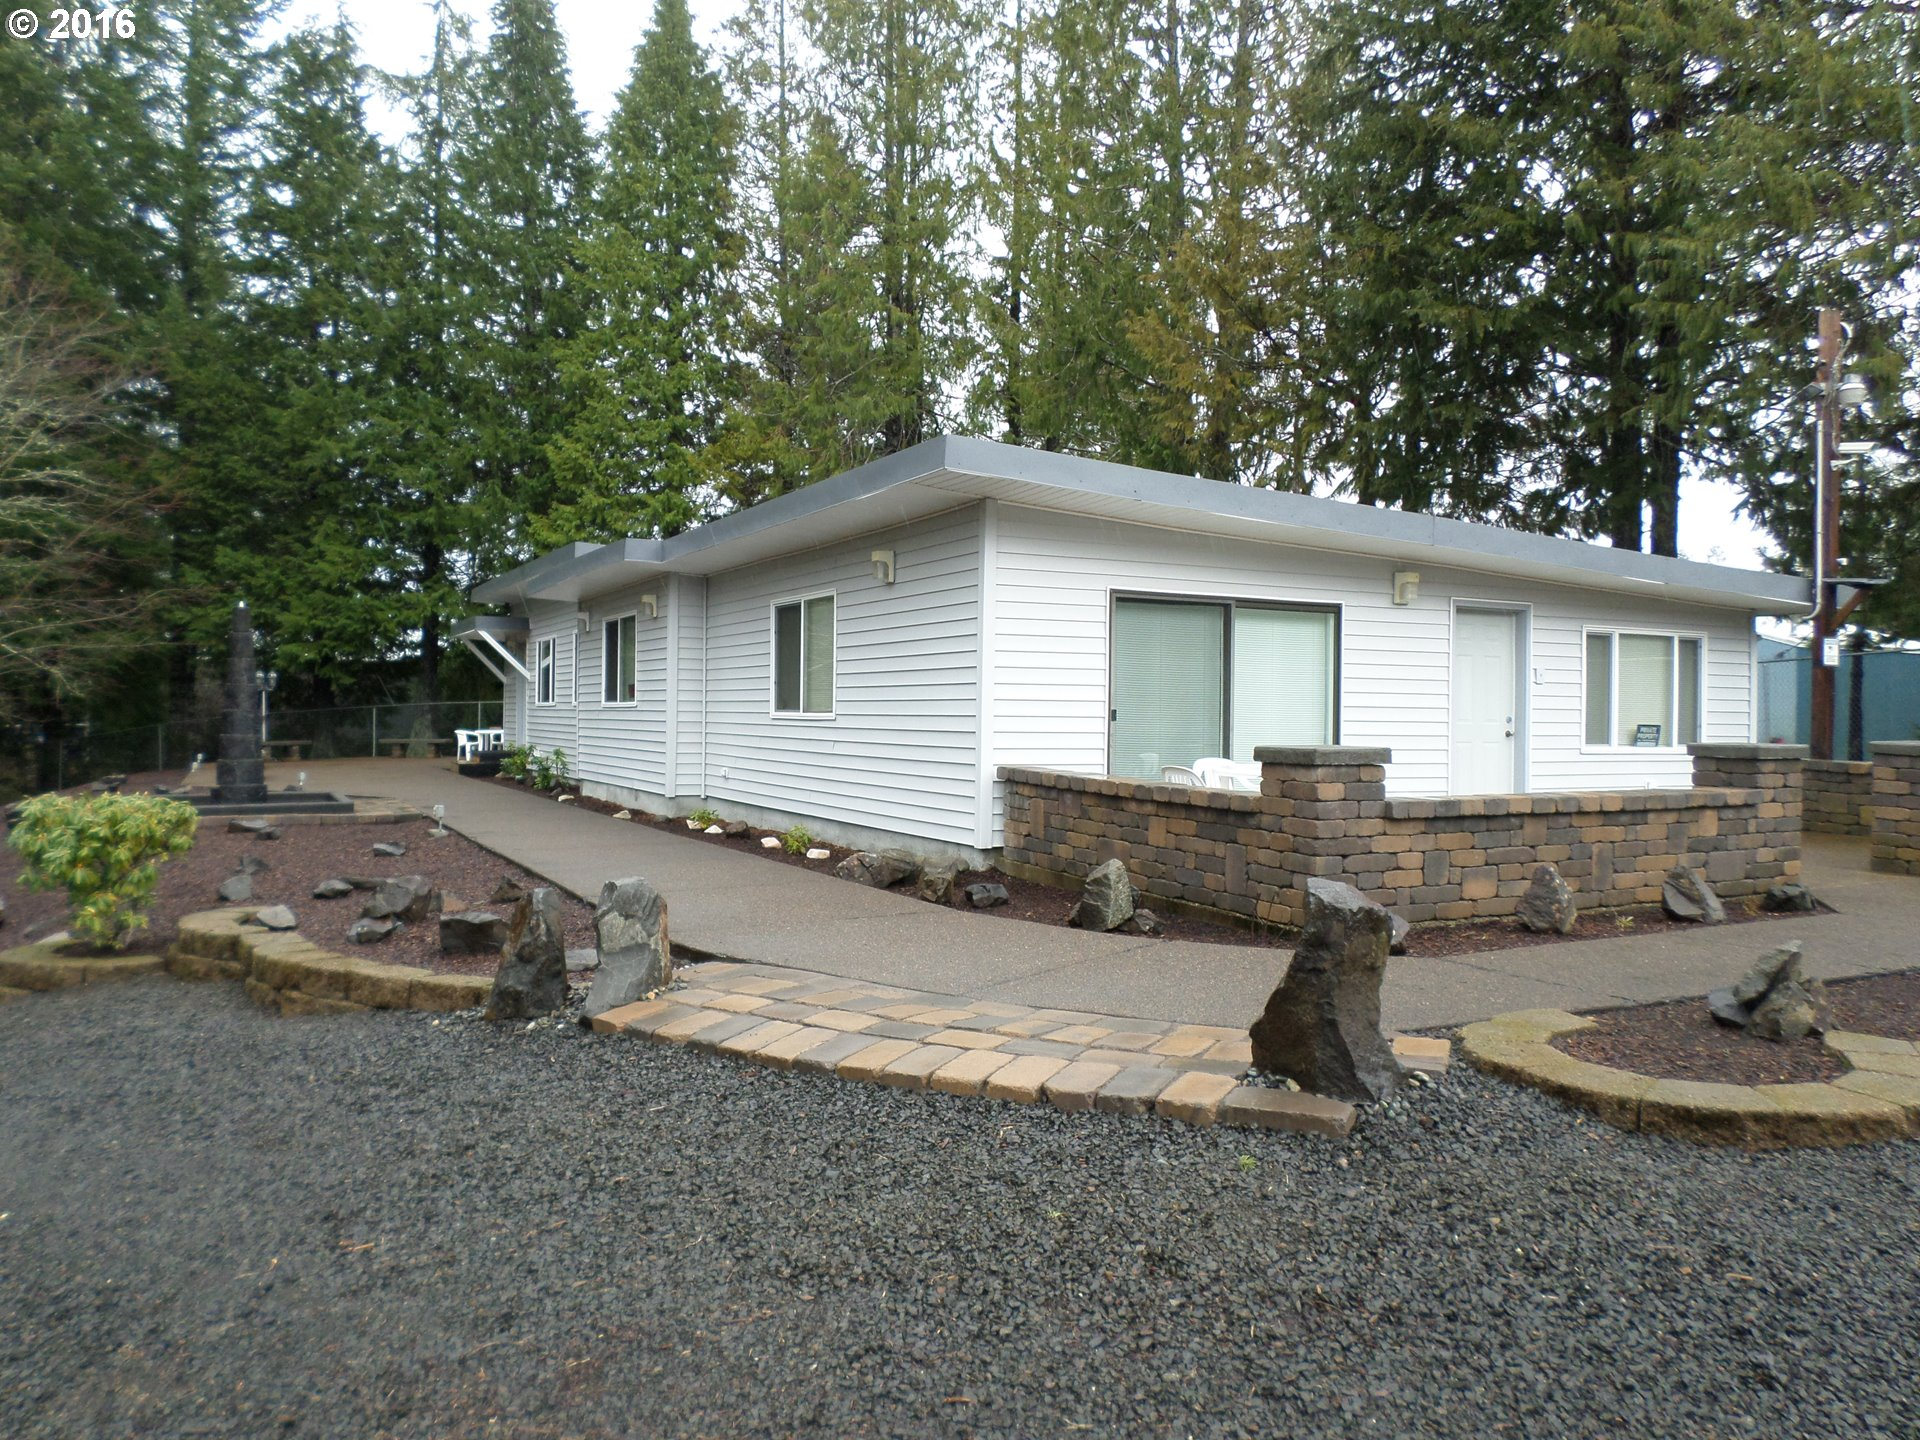 30710 Salmon River Hwy, Grand Ronde, OR